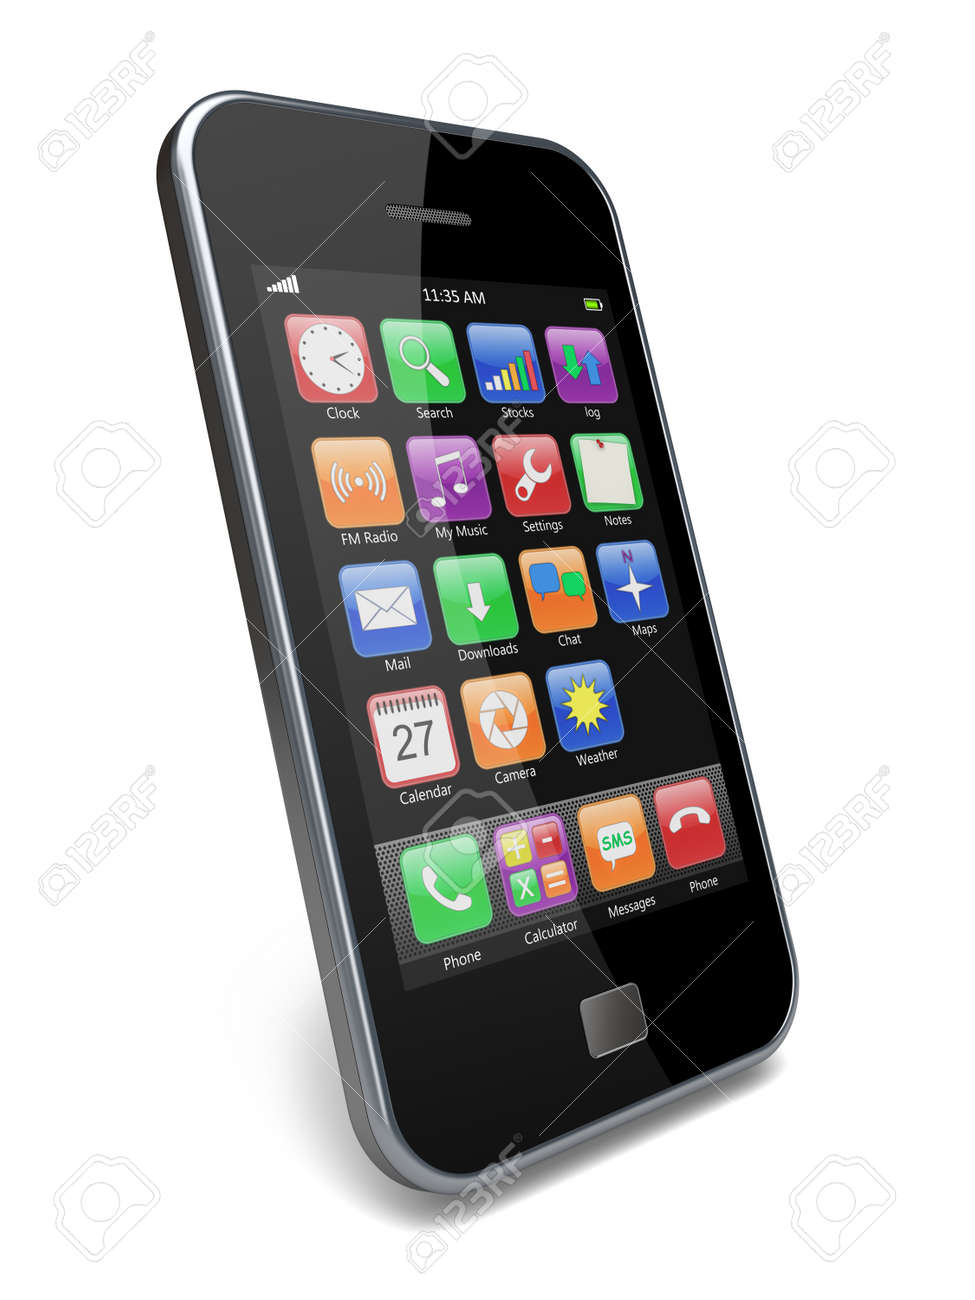 Mobile smartphone with touchscreen and colorful apps 3d image - 13429092